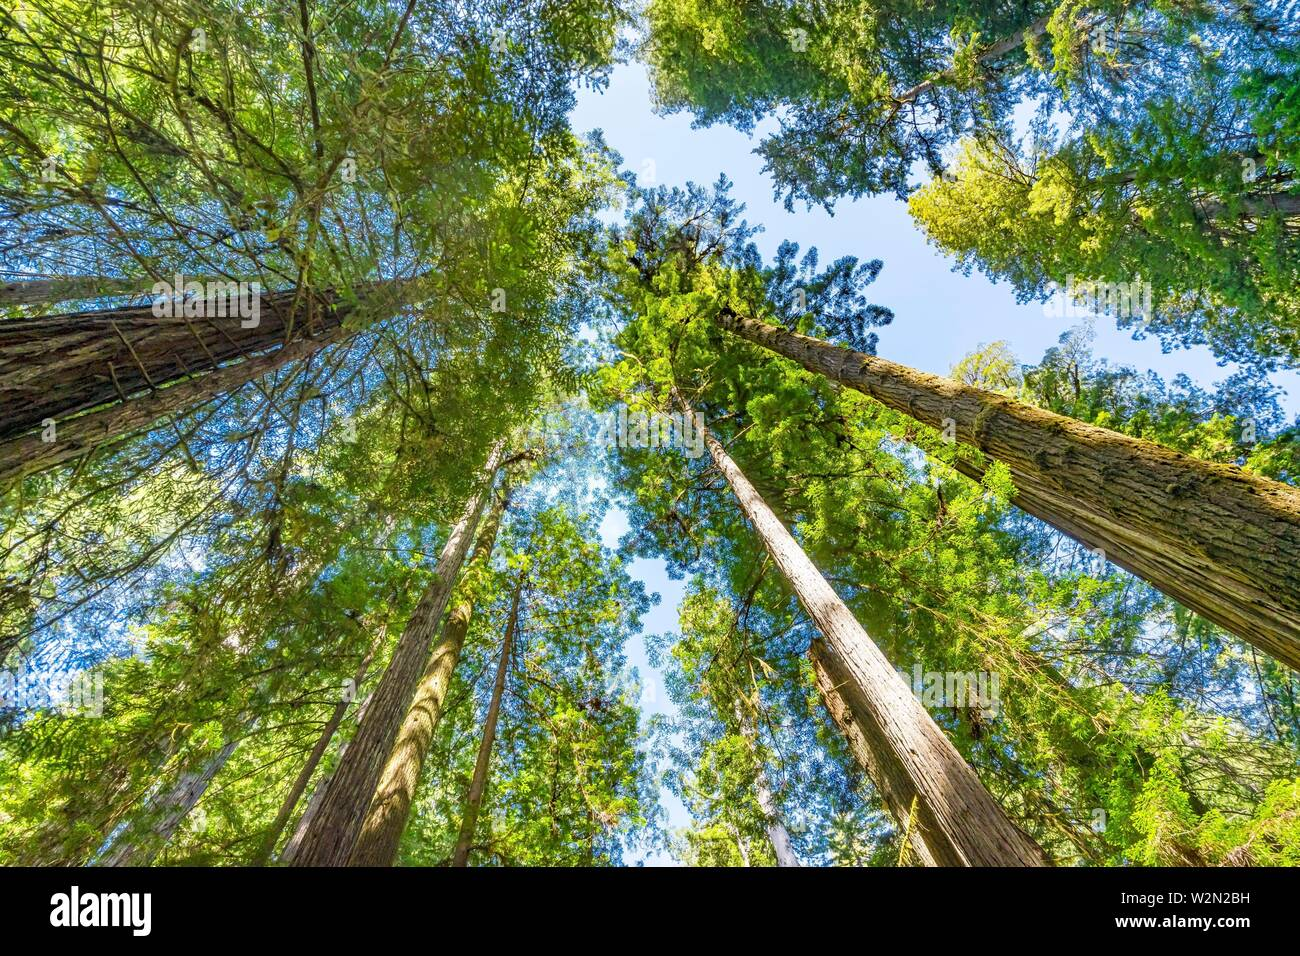 Green Towering Redwoods National Park Newton B Drury Drive Crescent City California. Tallest trees in World, 1000s of year old, size large buildings. Stock Photo